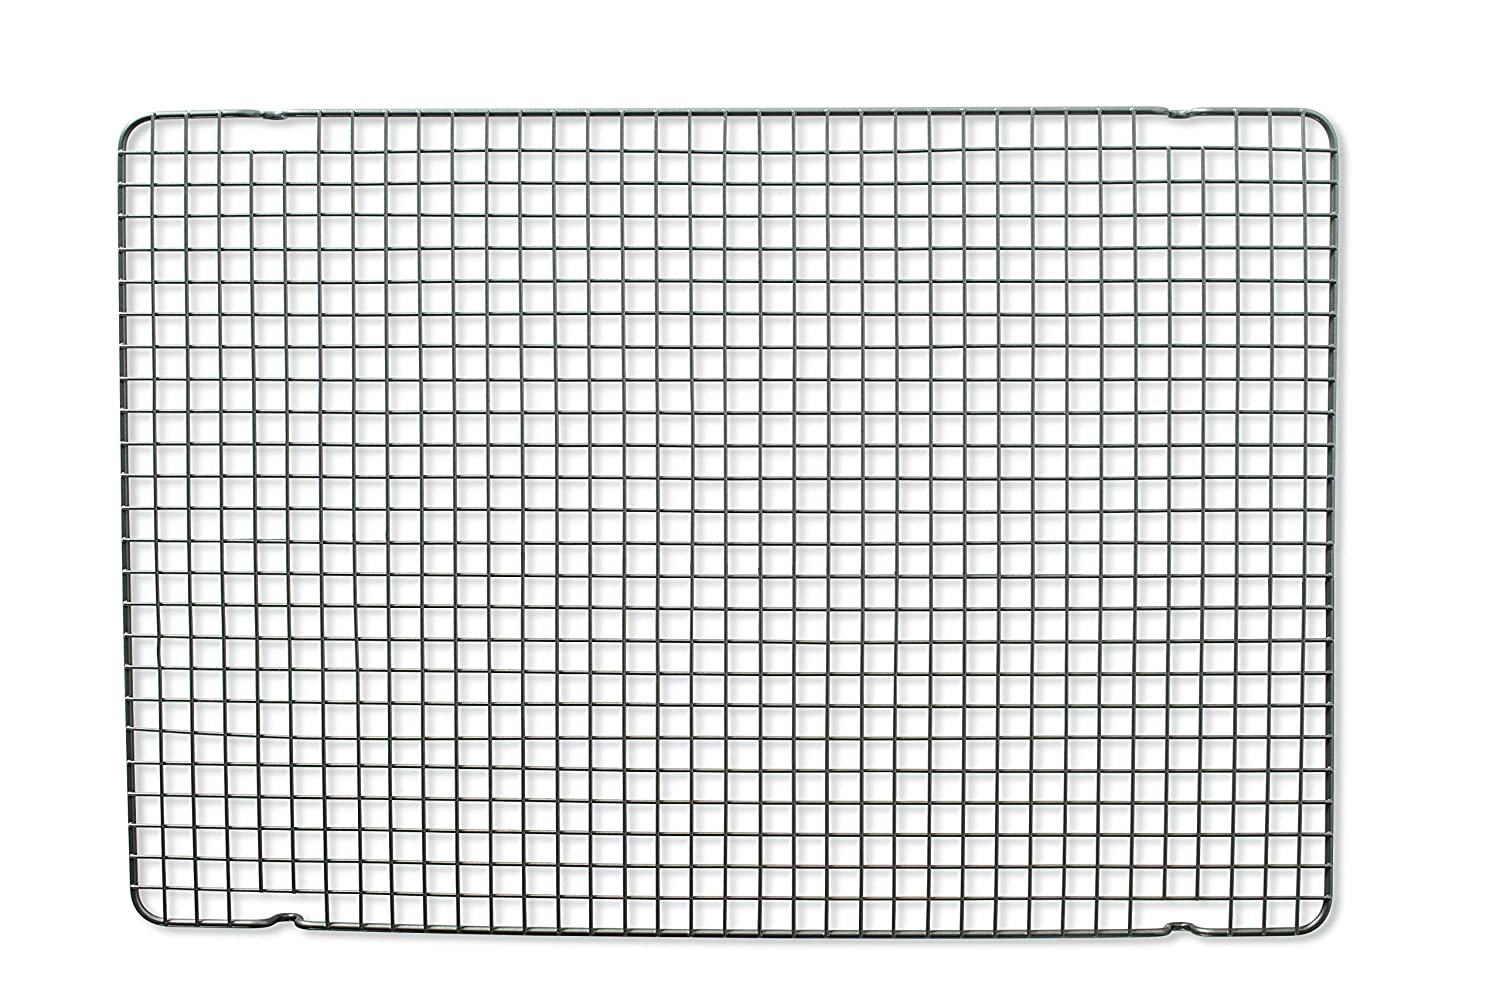 Nordic Ware 43347 Oven Safe Nonstick Baking & Cooling Grid (Big Sheet), One, Steel